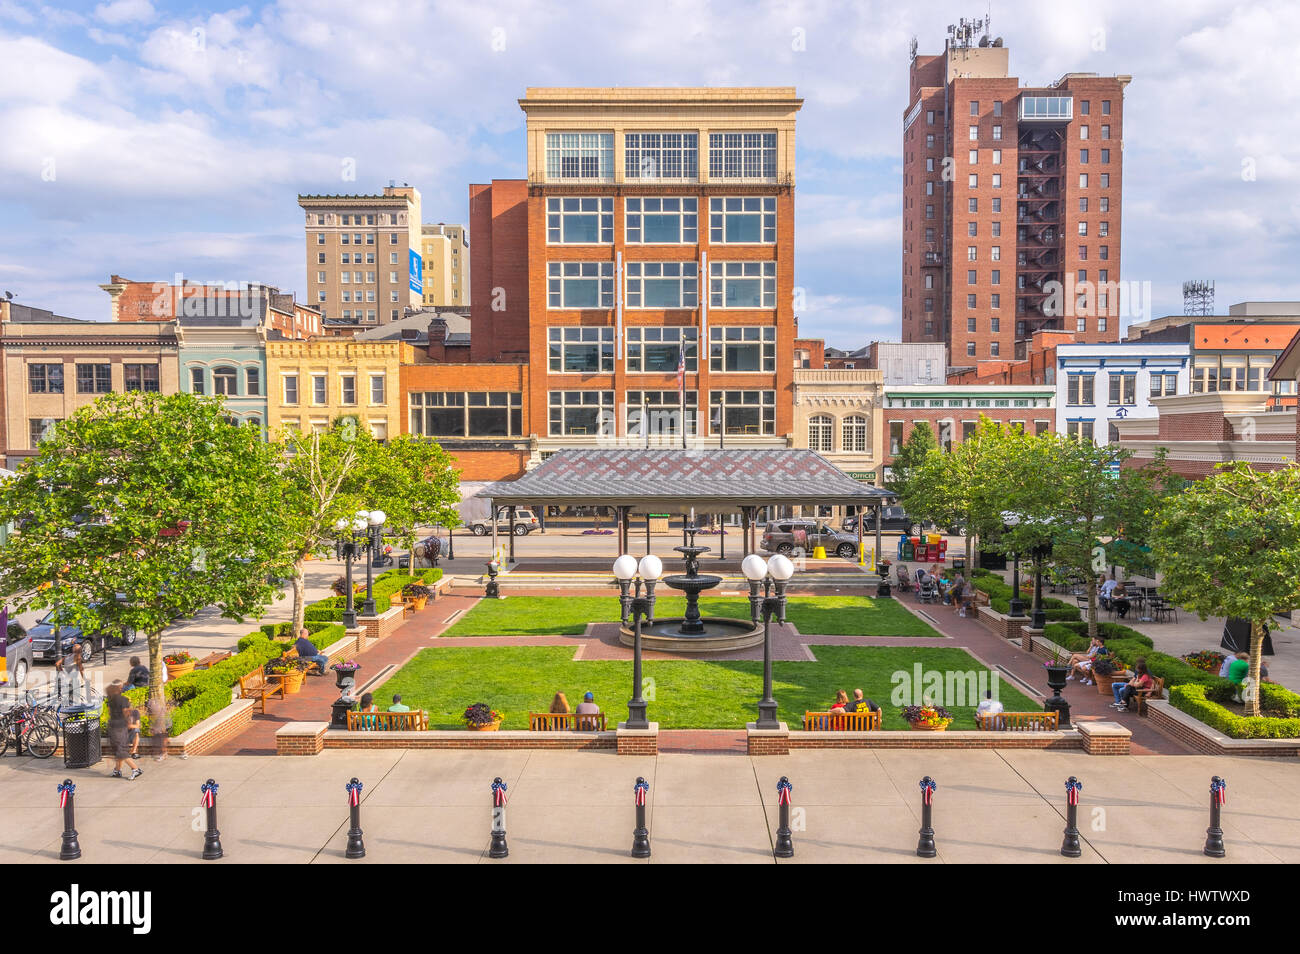 A slice in time at Pullman Square in Huntington, West Virginia. - Stock Image